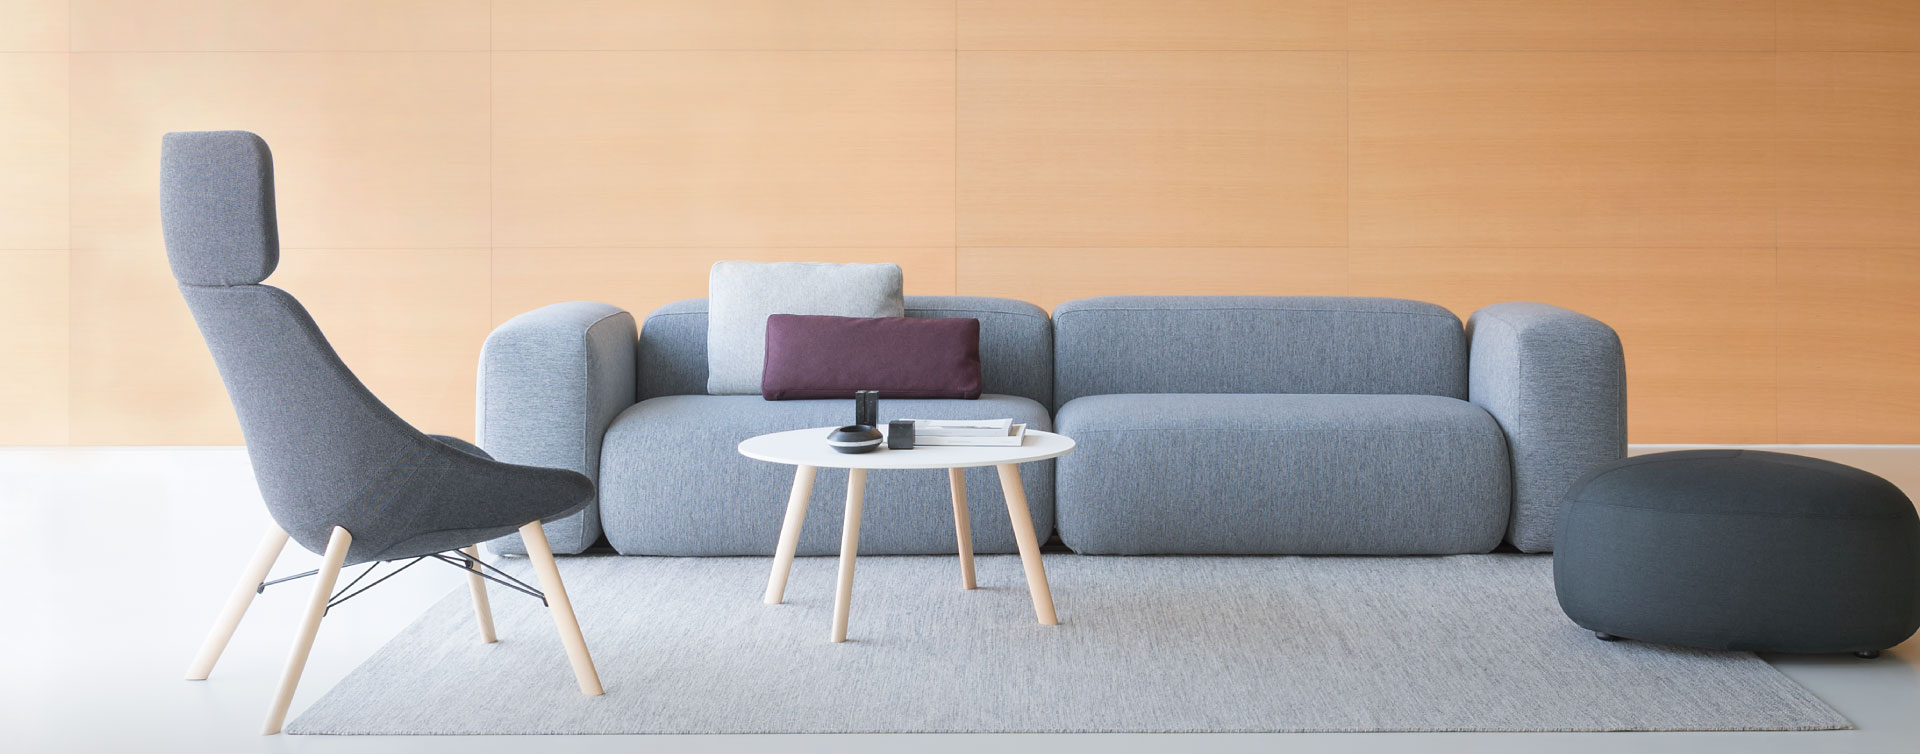 Seating systems modern design sofas, poufs and lounge chairs ...